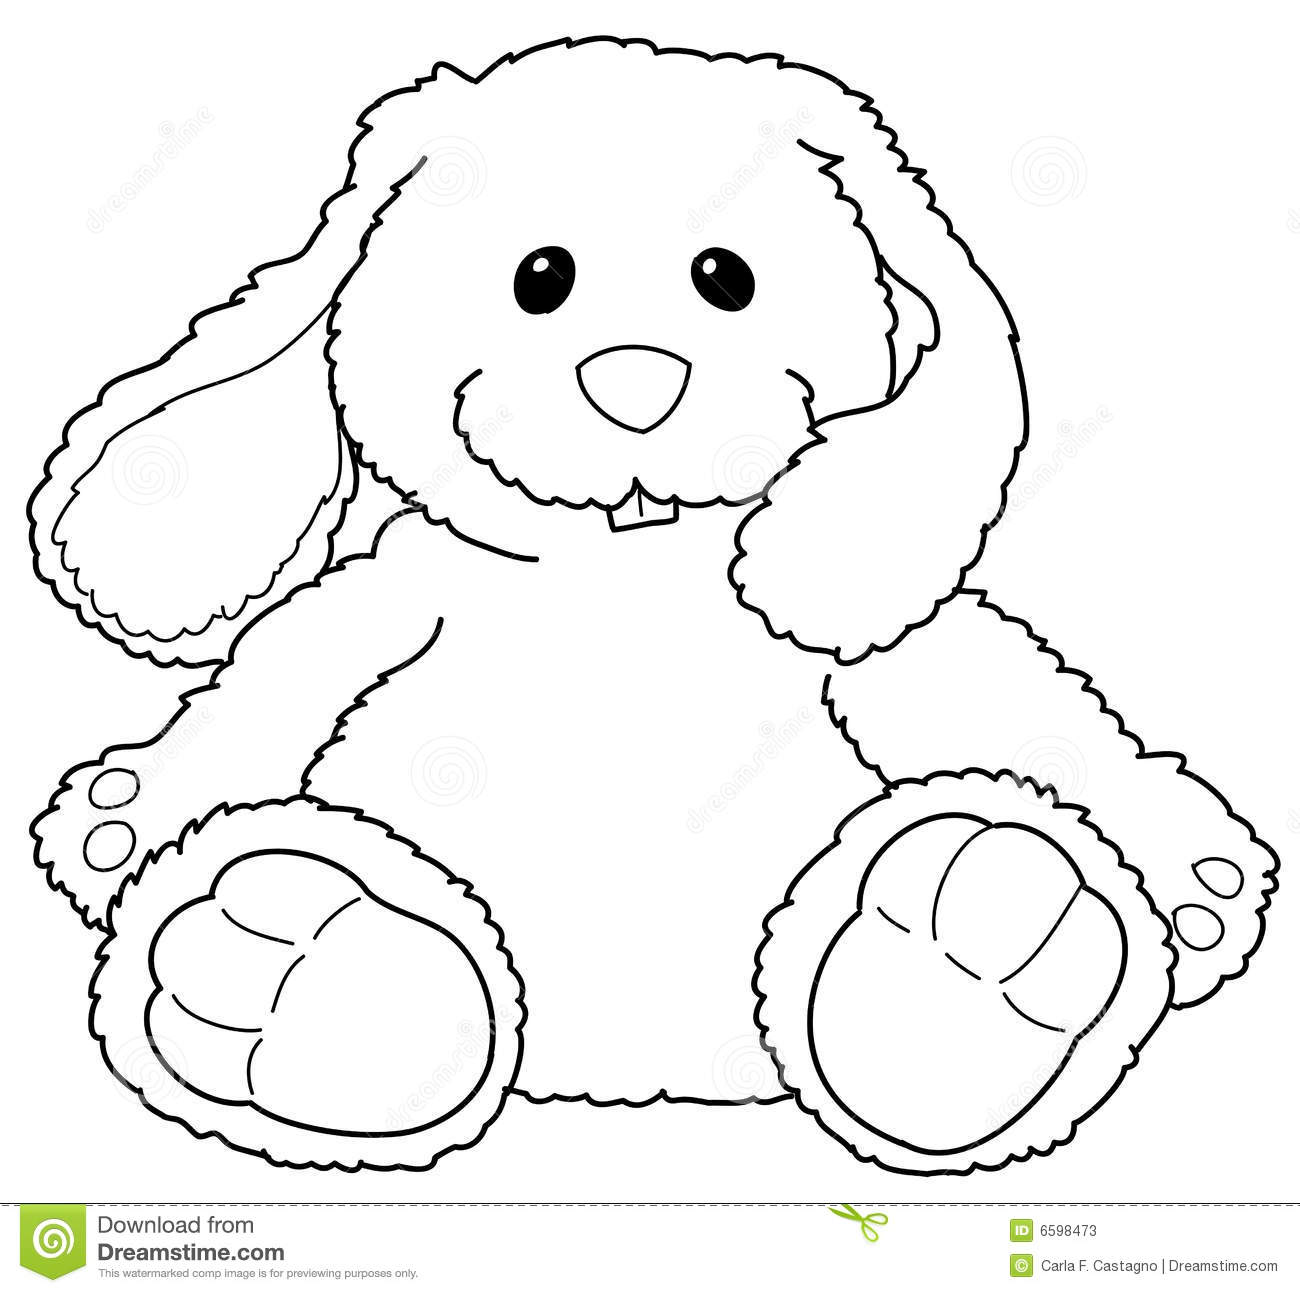 Stuffed bunny stock vector. Illustration of coloring ...